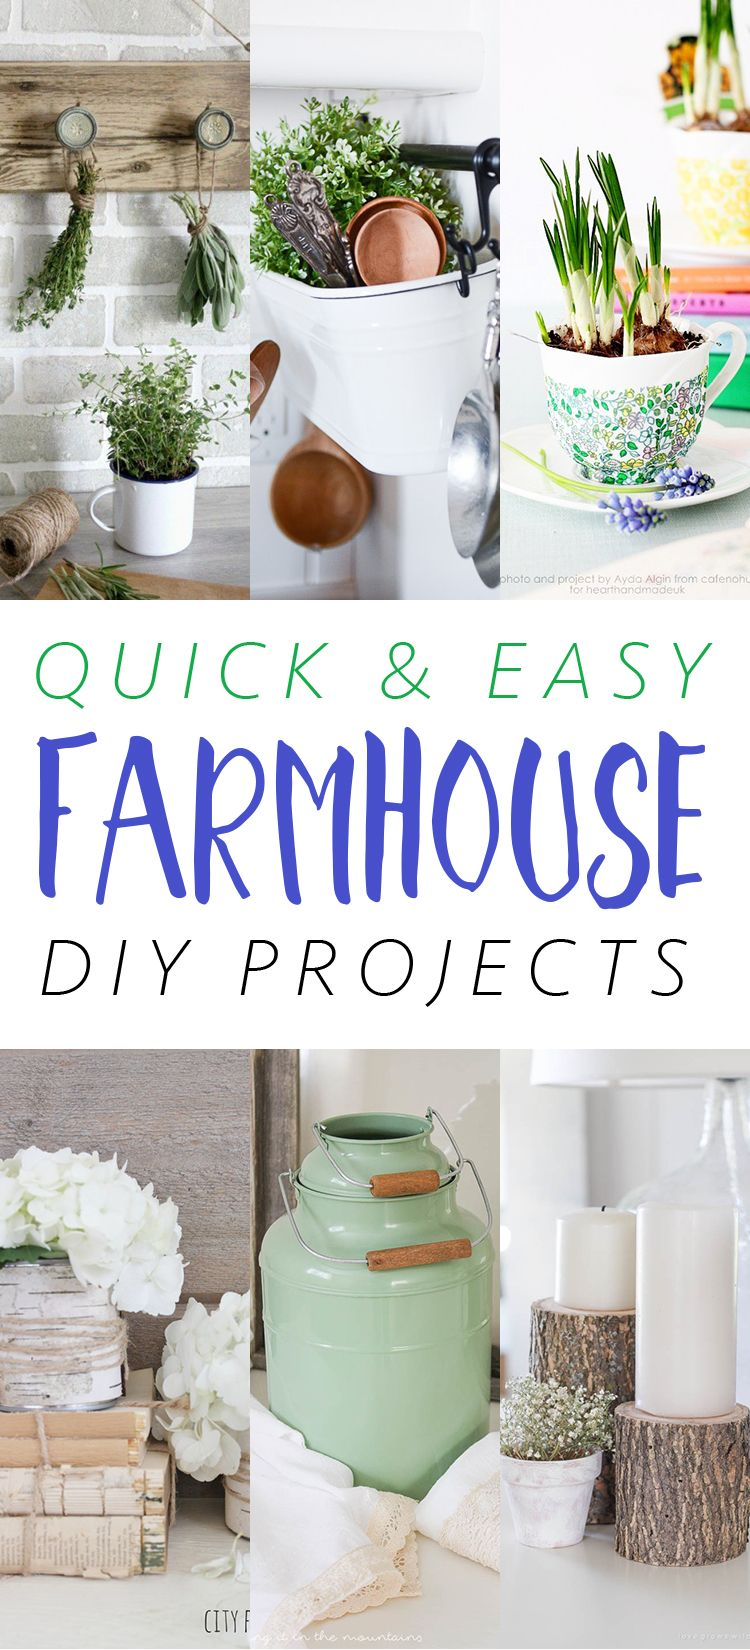 Quick And Easy Farmhouse Diy Projects Farmhouse Diy Projects Farmhouse Diy Country House Decor